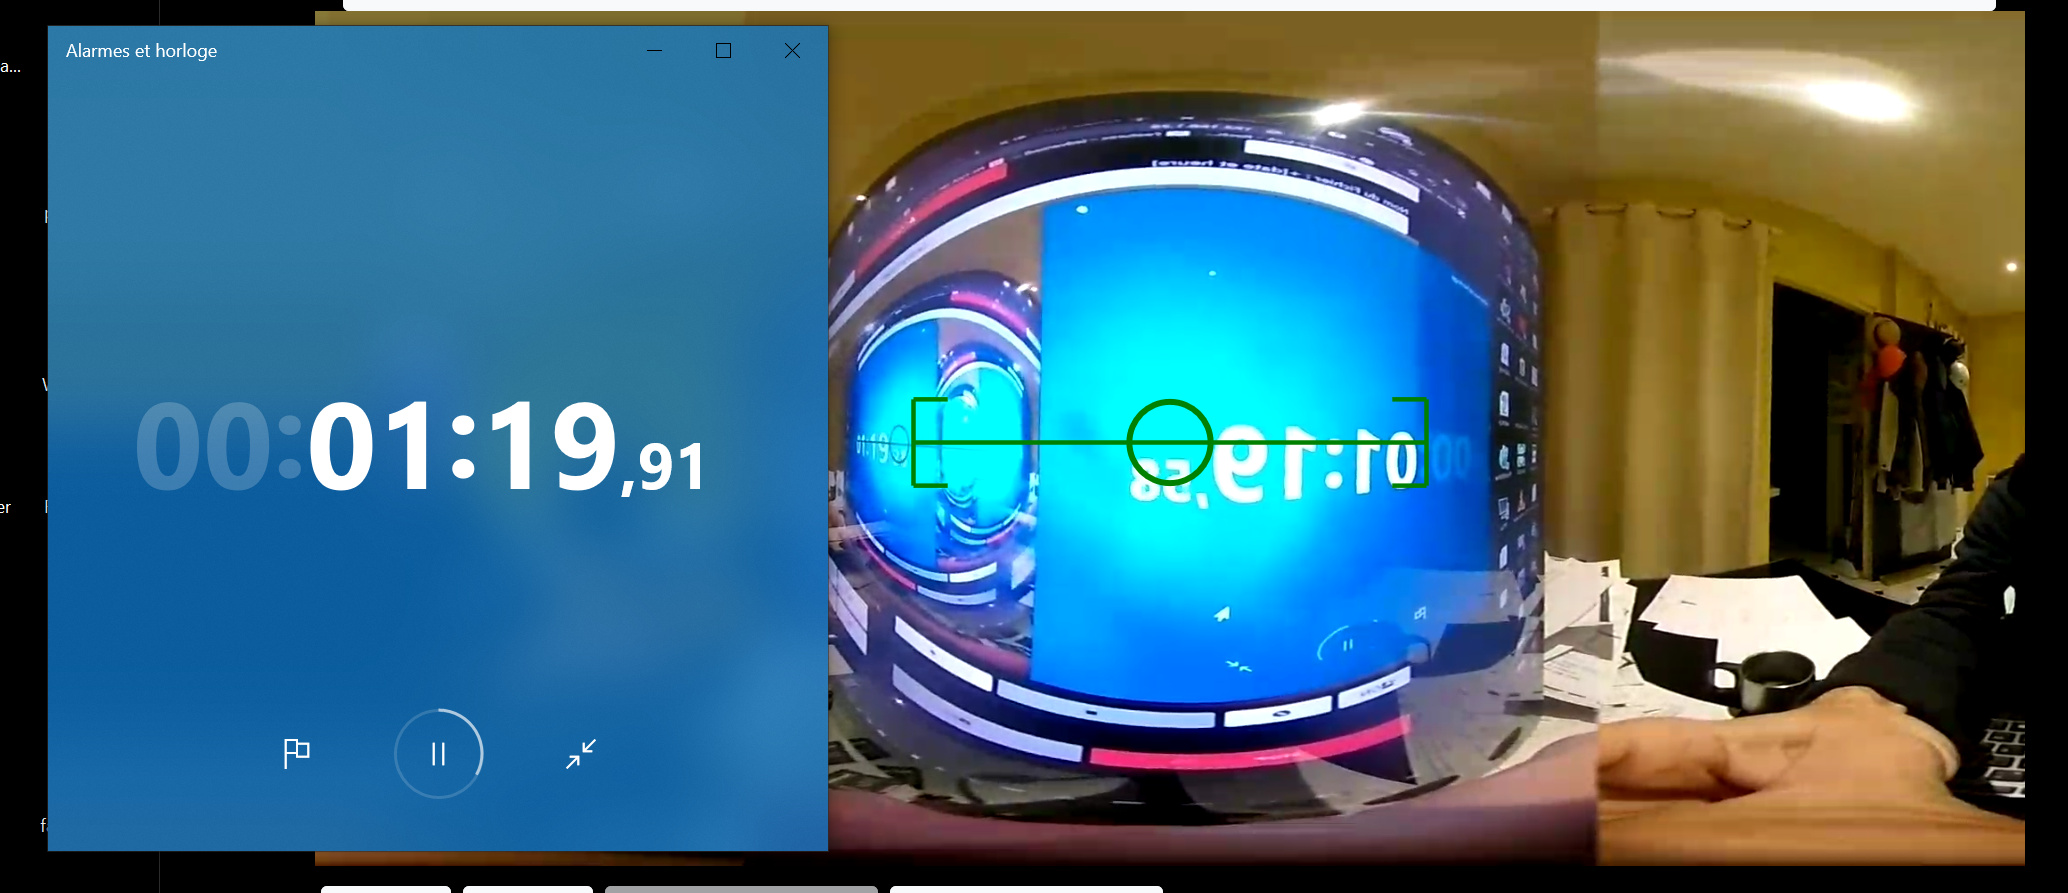 Low latency (0 4s) H 264 livestreaming from Theta V WiFi to